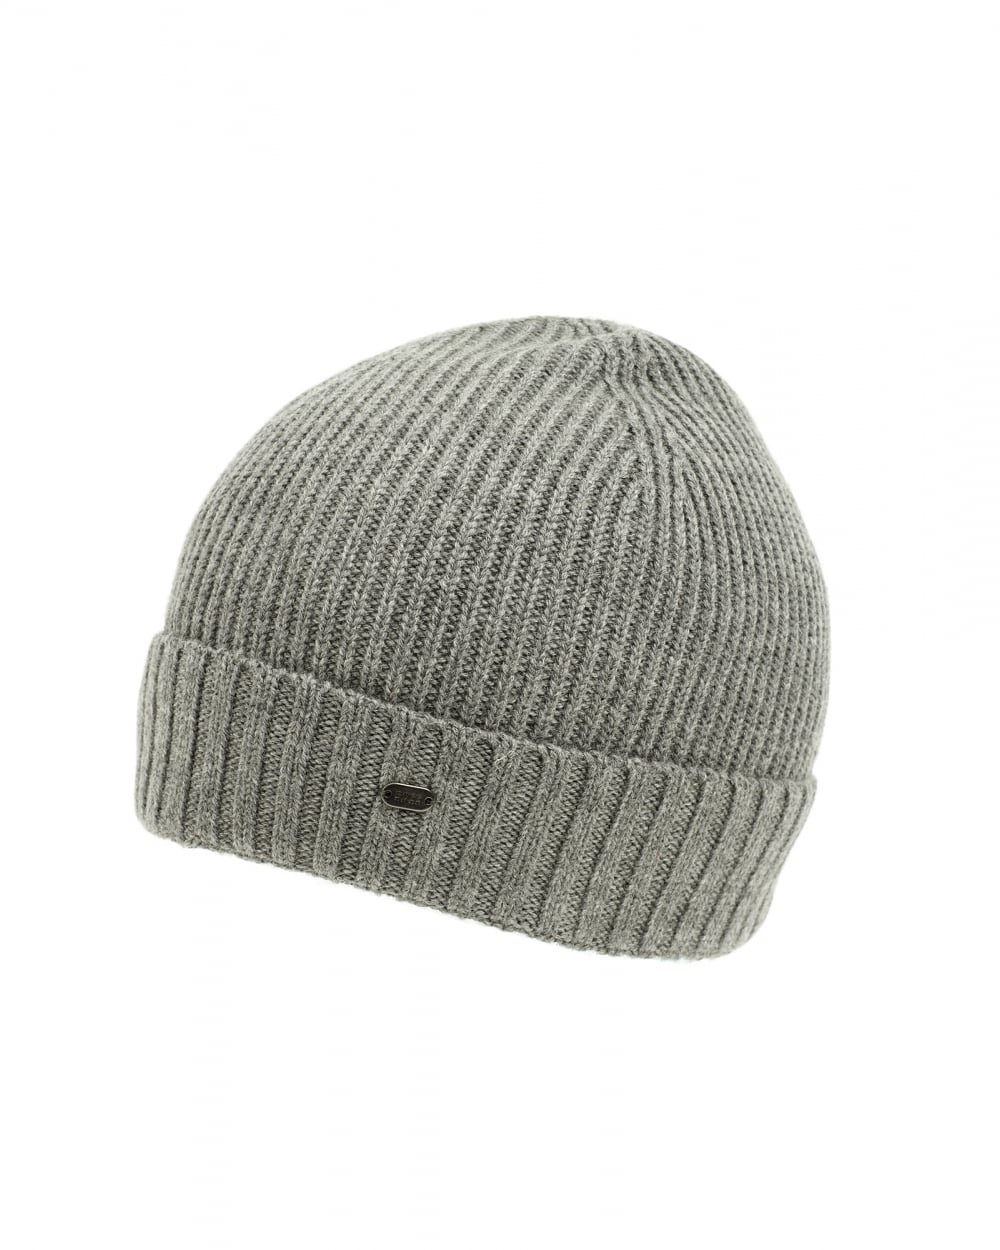 Hugo Boss Mens C-Fati 2 Ribbed Wool Grey Beanie Hat 4ea2cc88a3a